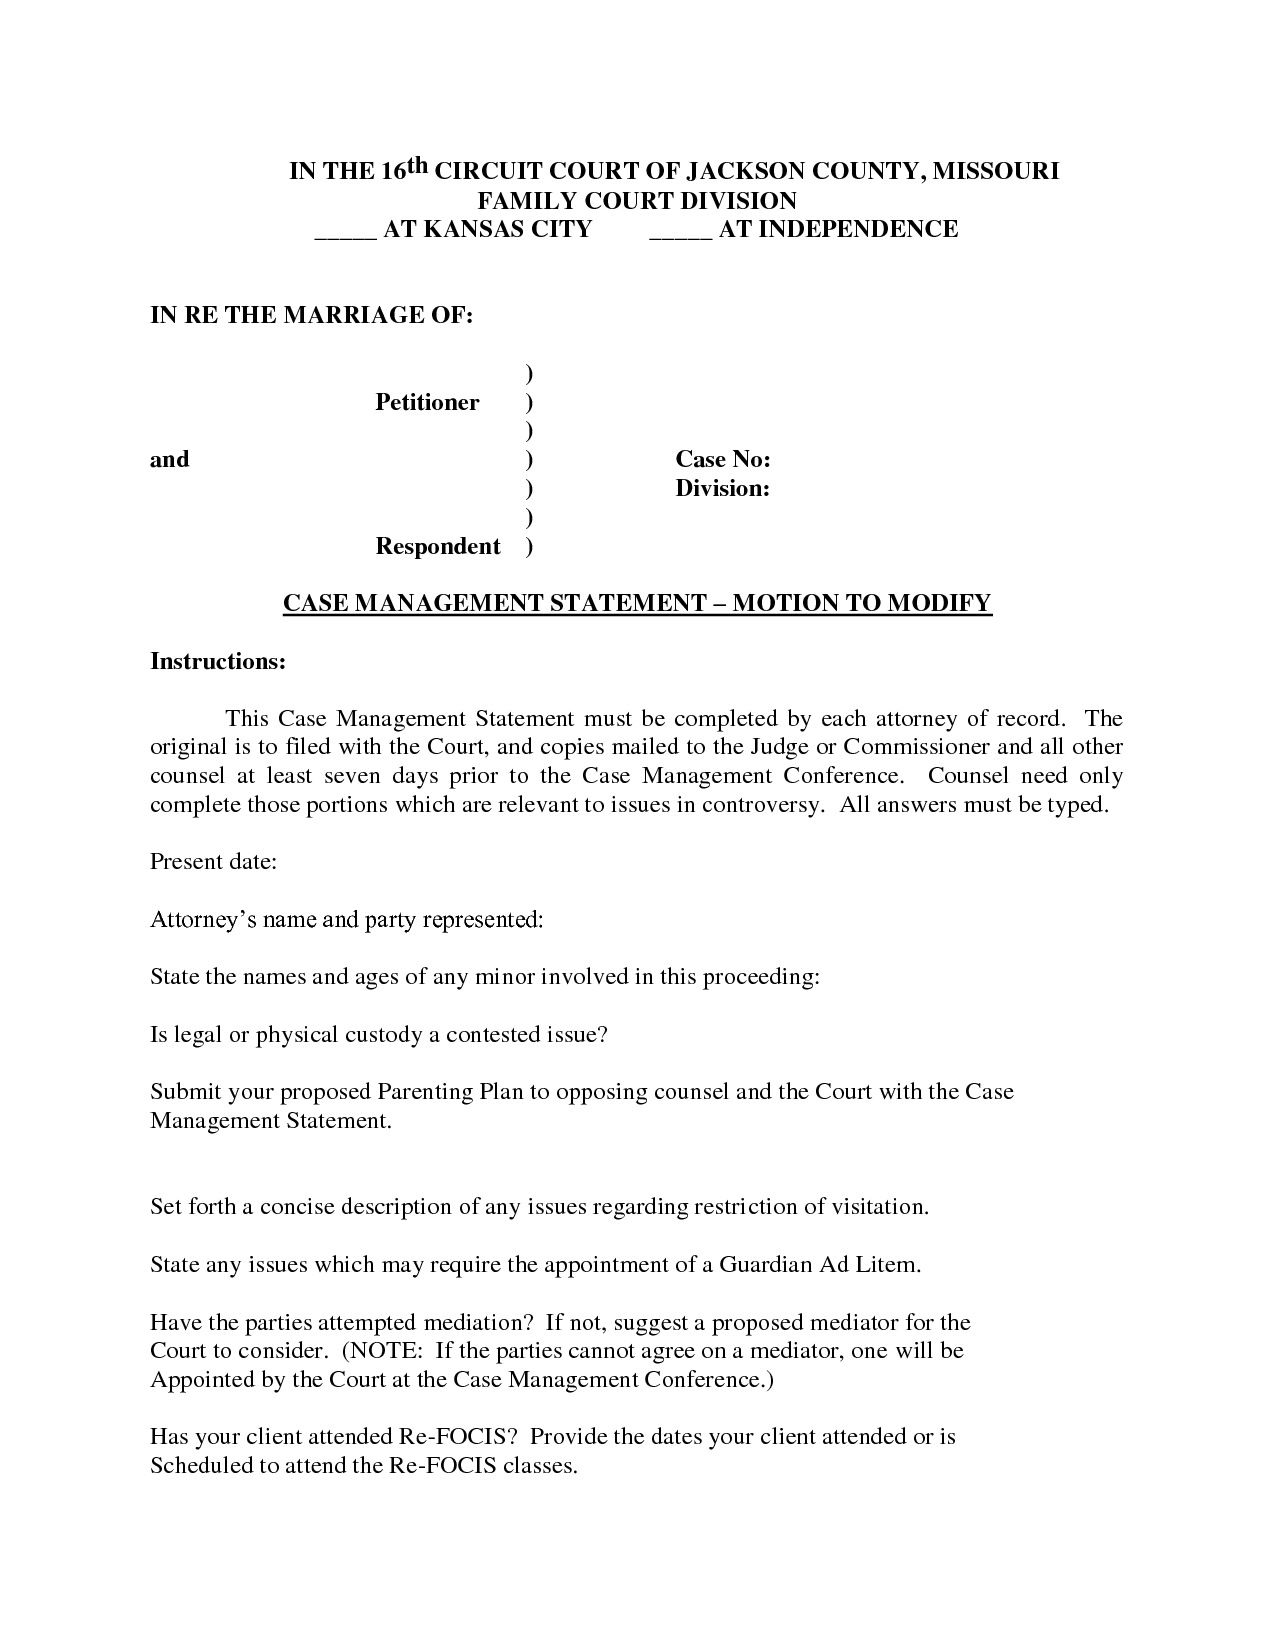 Court Document Template Ins.ssrenterprises.co With Regard To Legal Motion Template 2018